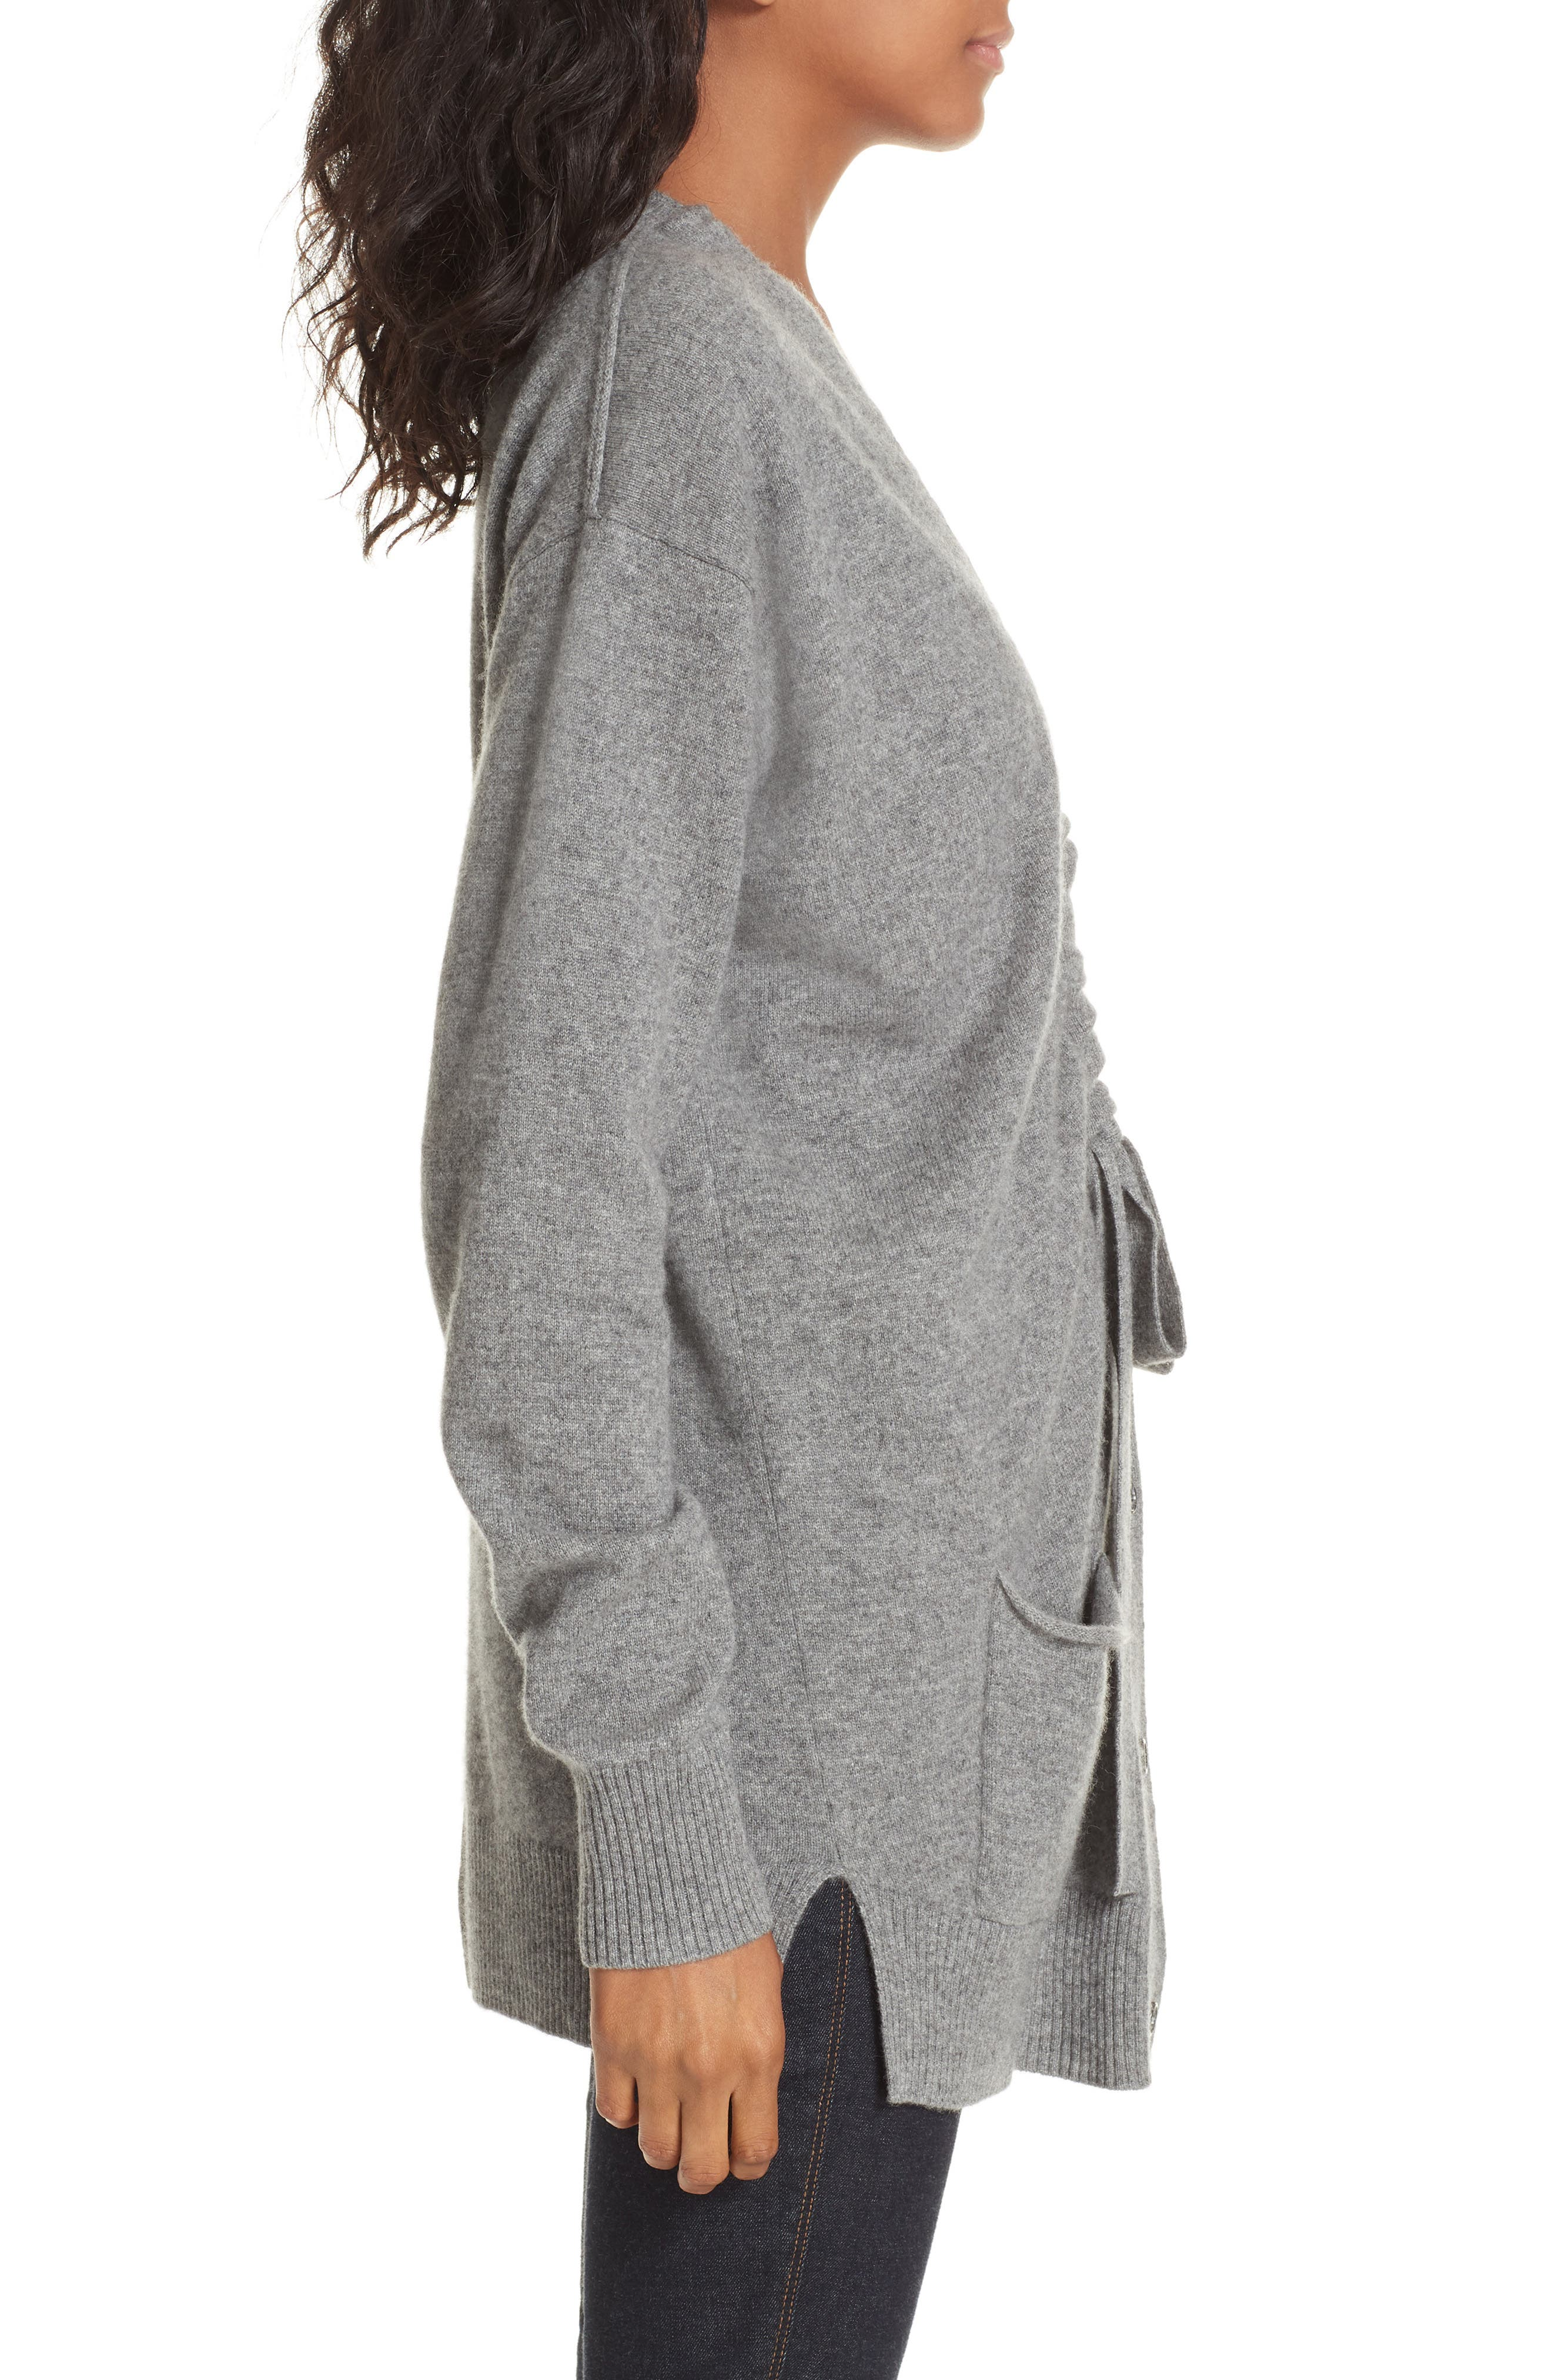 Bray Cashmere Cardigan,                             Alternate thumbnail 3, color,                             HEATHER GREY